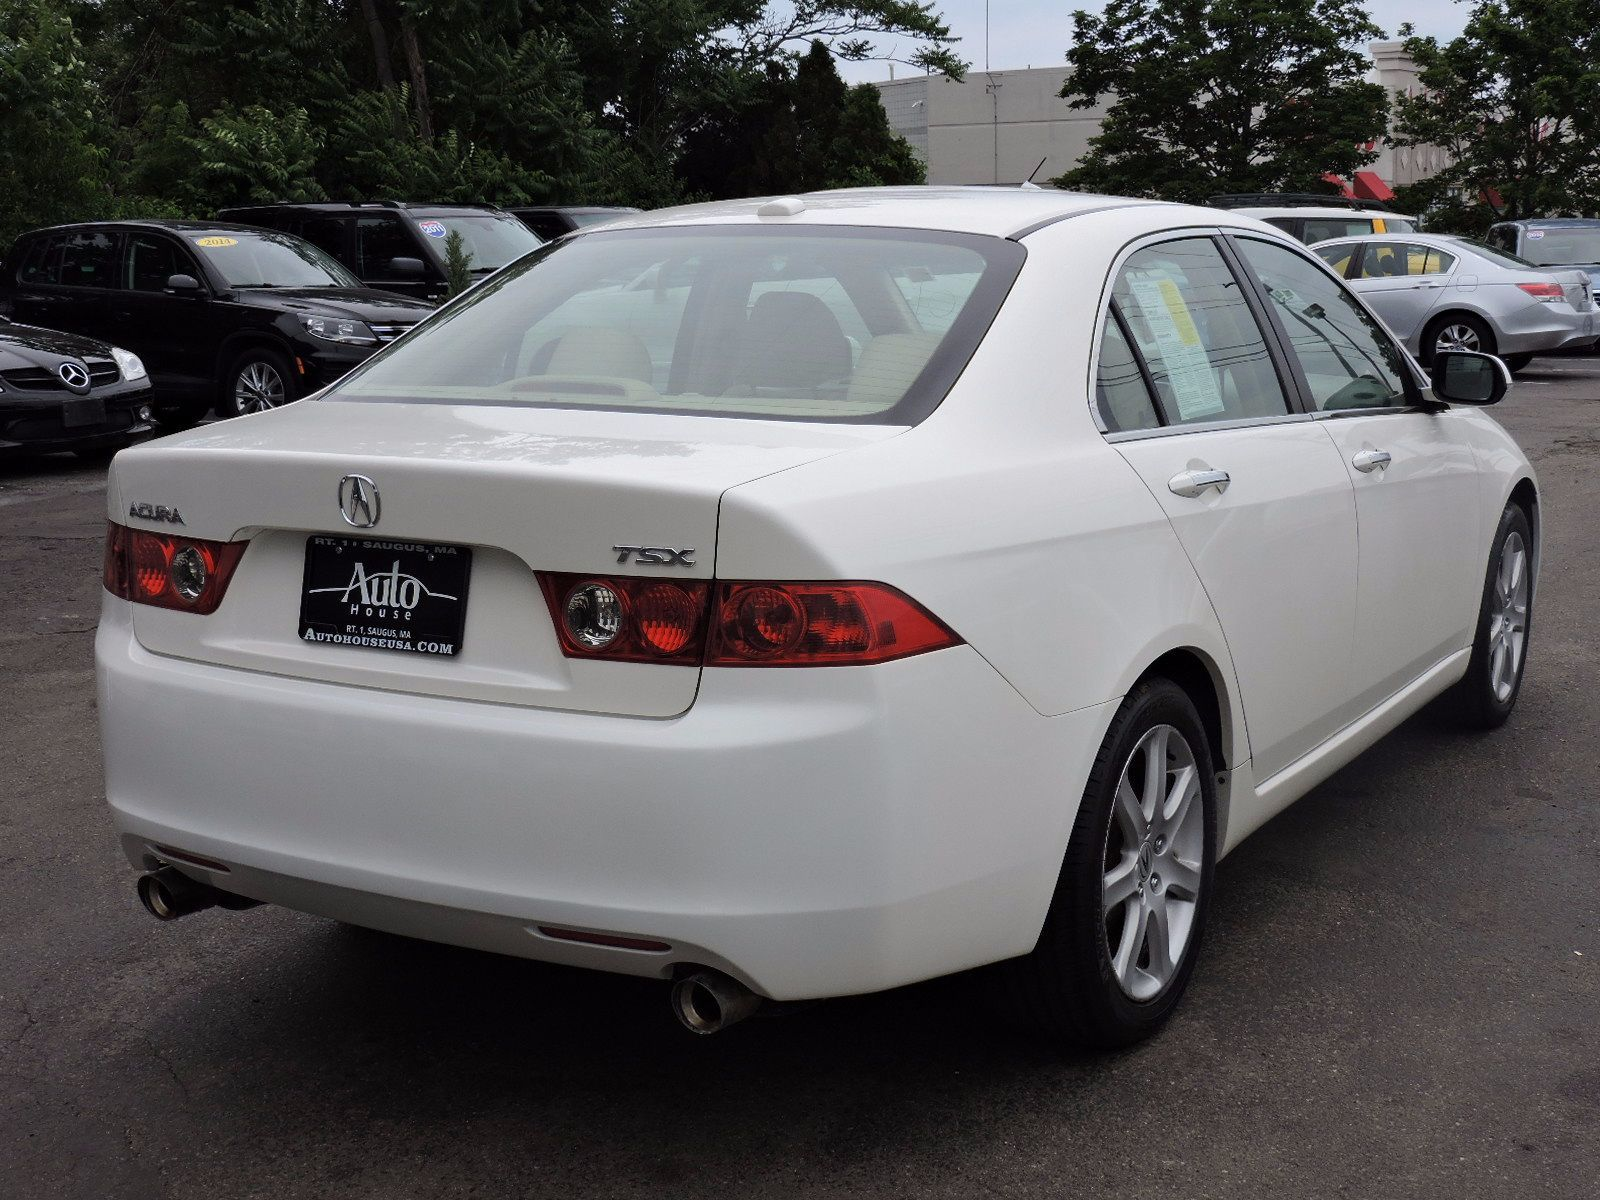 used 2005 acura tsx at auto house usa saugus. Black Bedroom Furniture Sets. Home Design Ideas